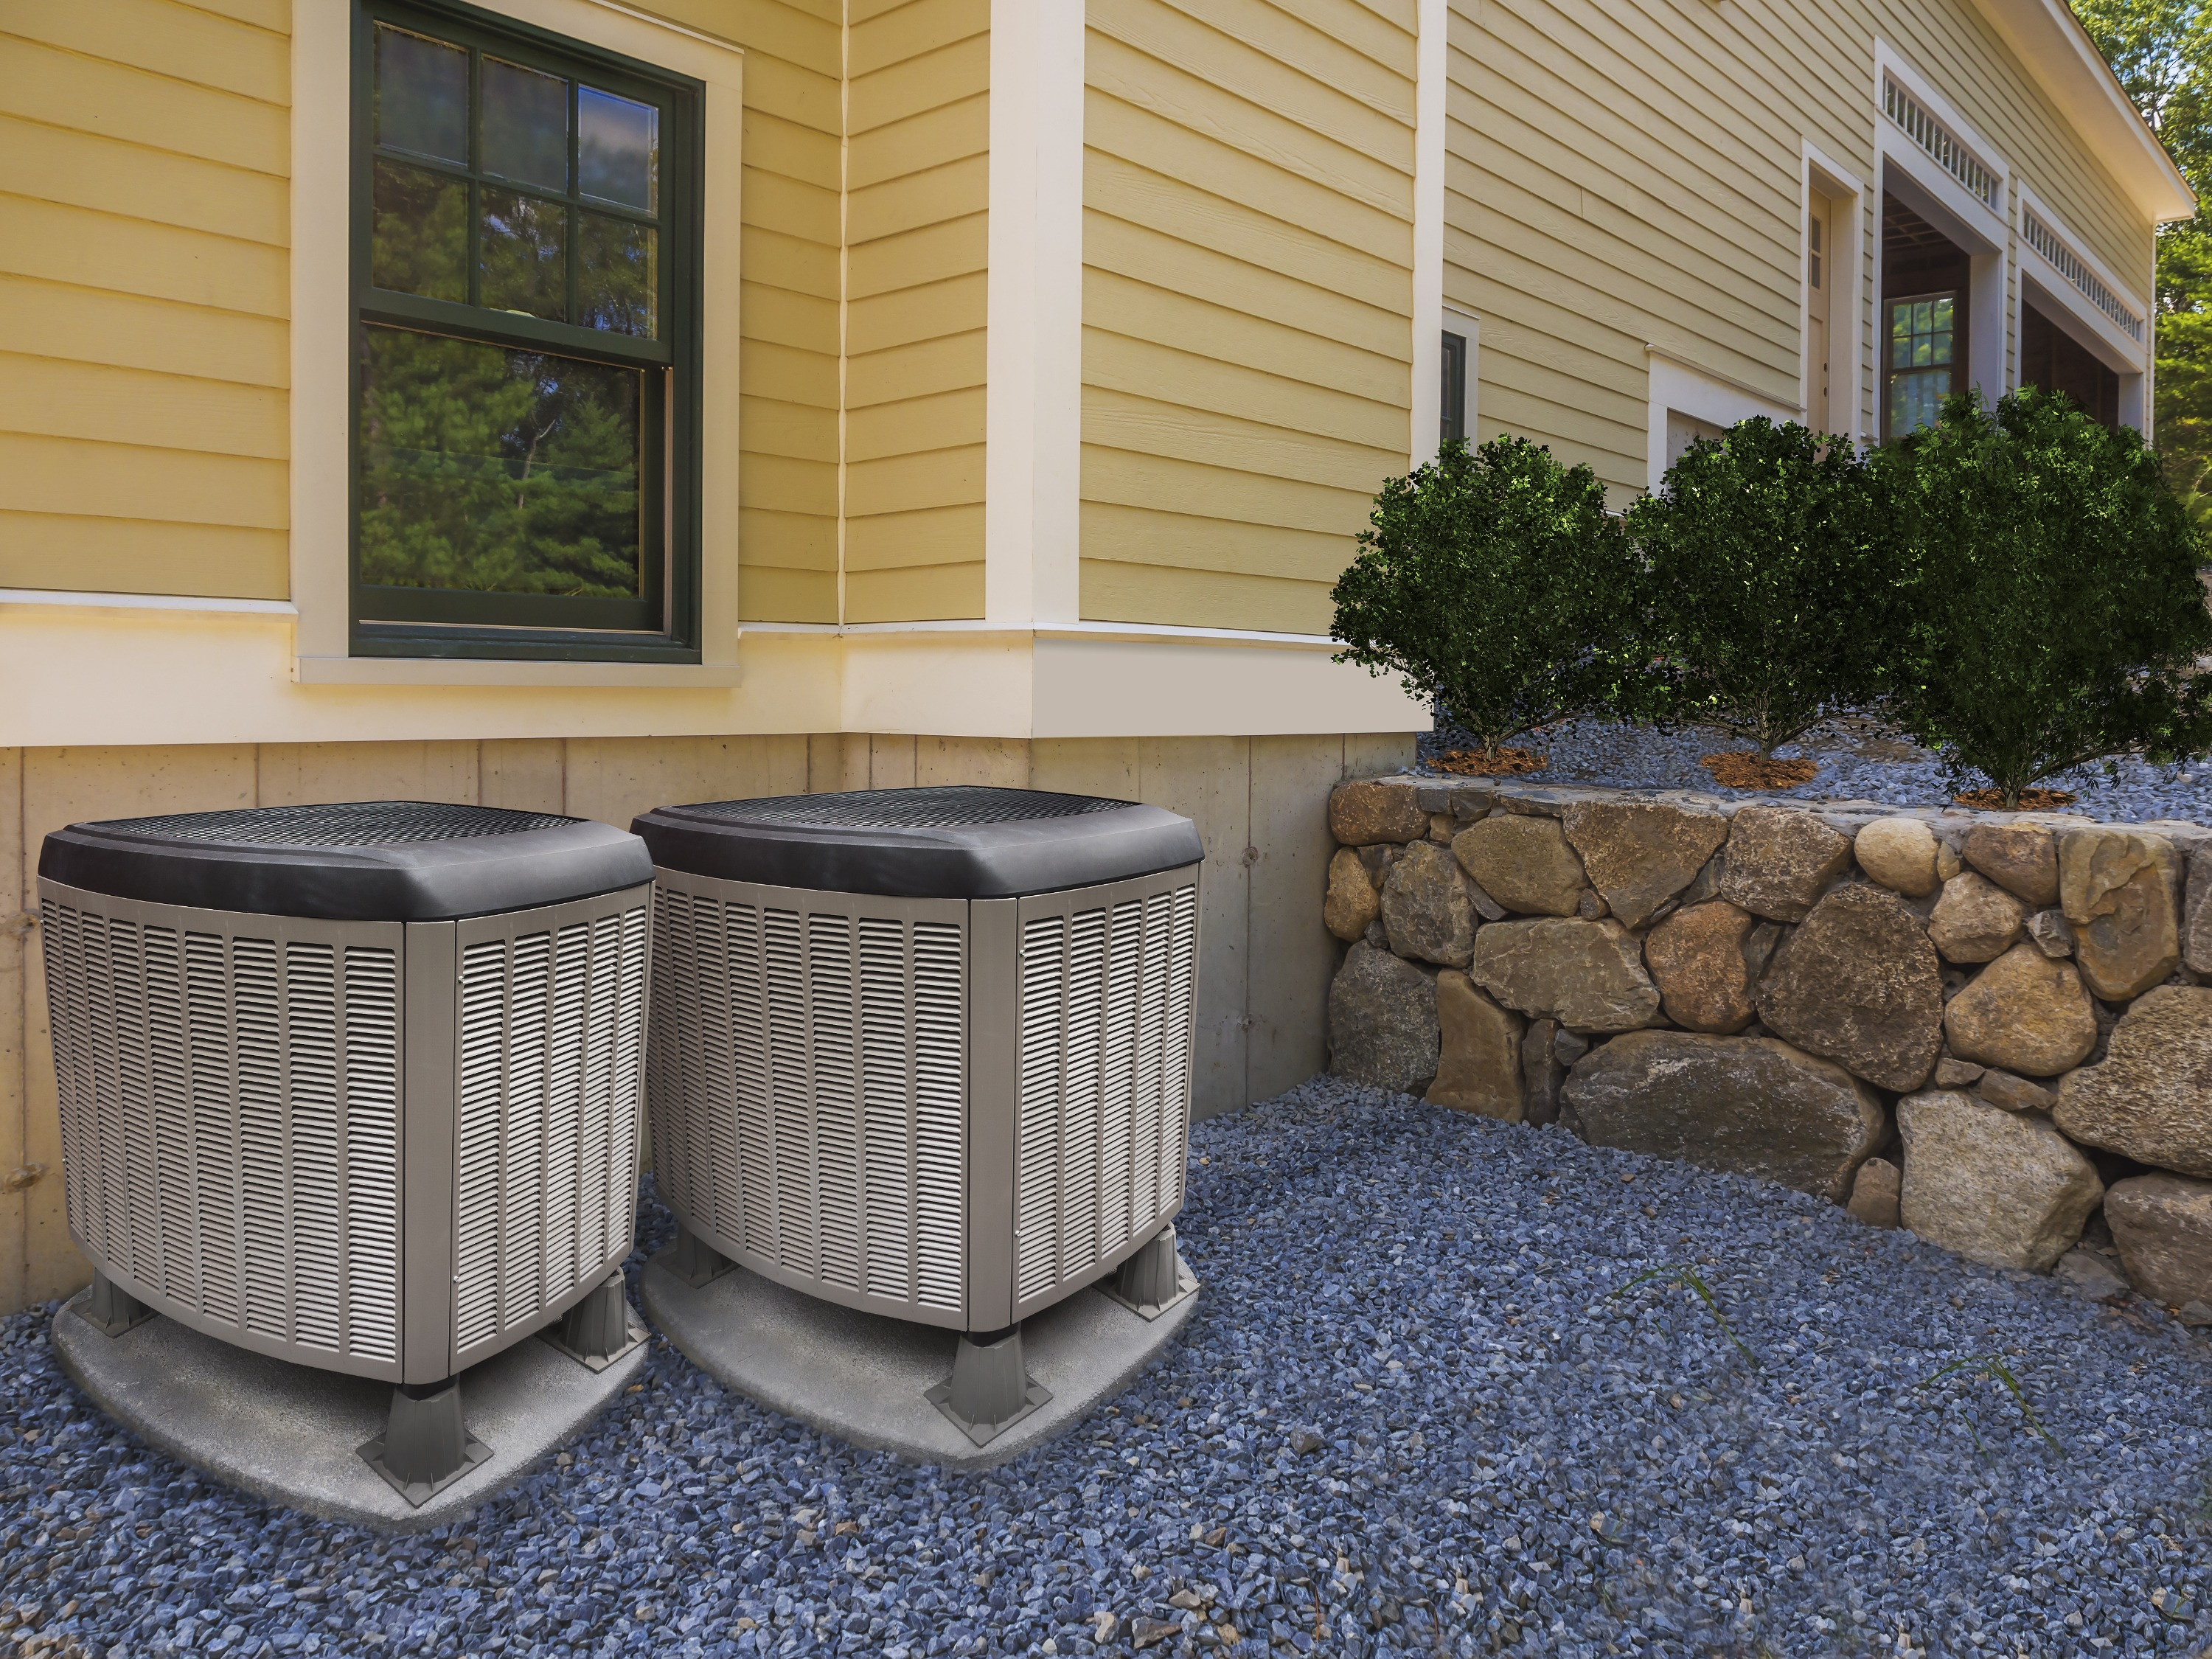 Two heat pumps on the exterior of a yellow home near a stone wall.